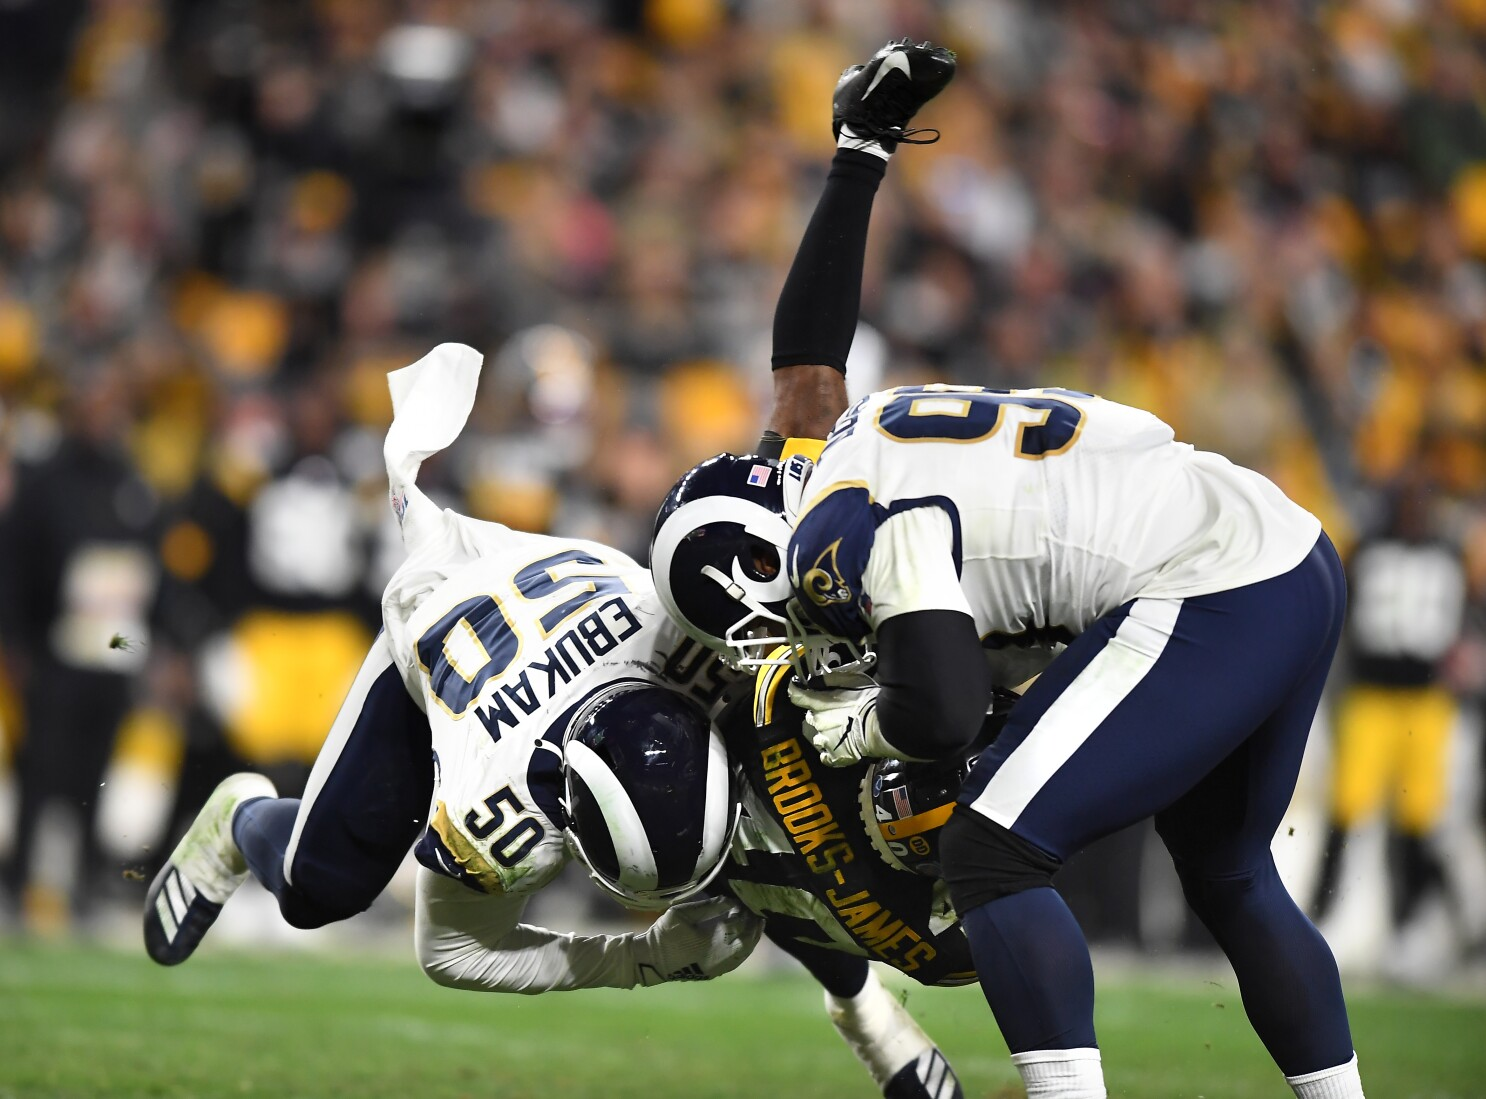 Rams Aaron Donald Sad To Leave Hometown Pittsburgh With Loss The San Diego Union Tribune